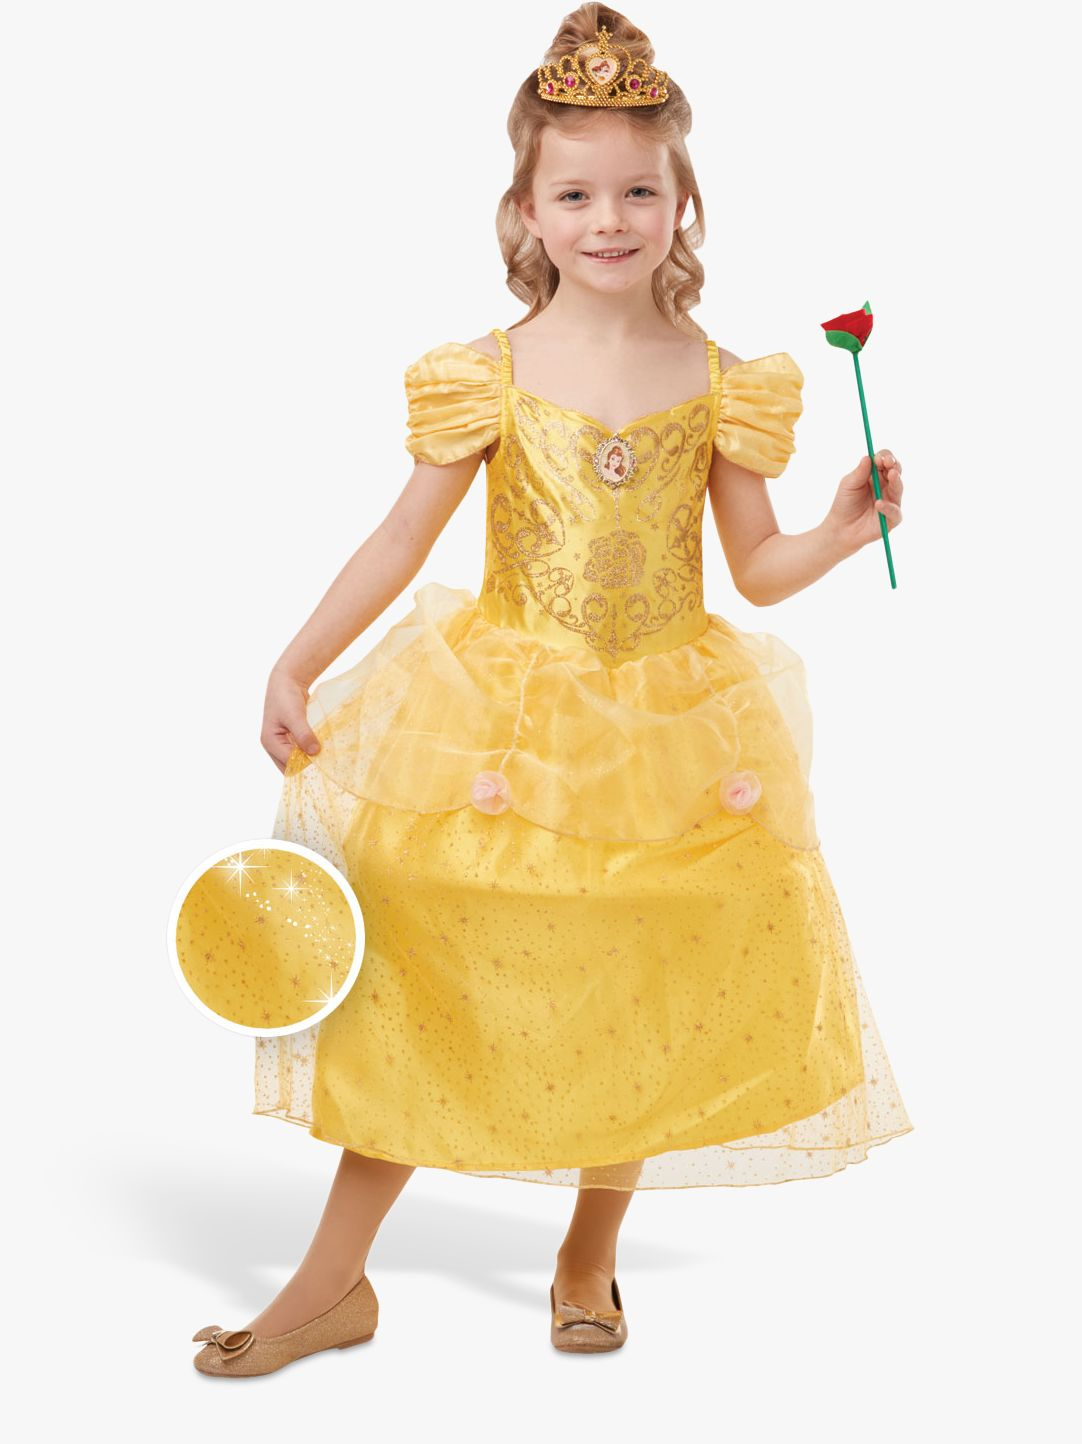 Rubies Disney Princess Beauty and the Beast Belle Children's Costume, 5-6 years